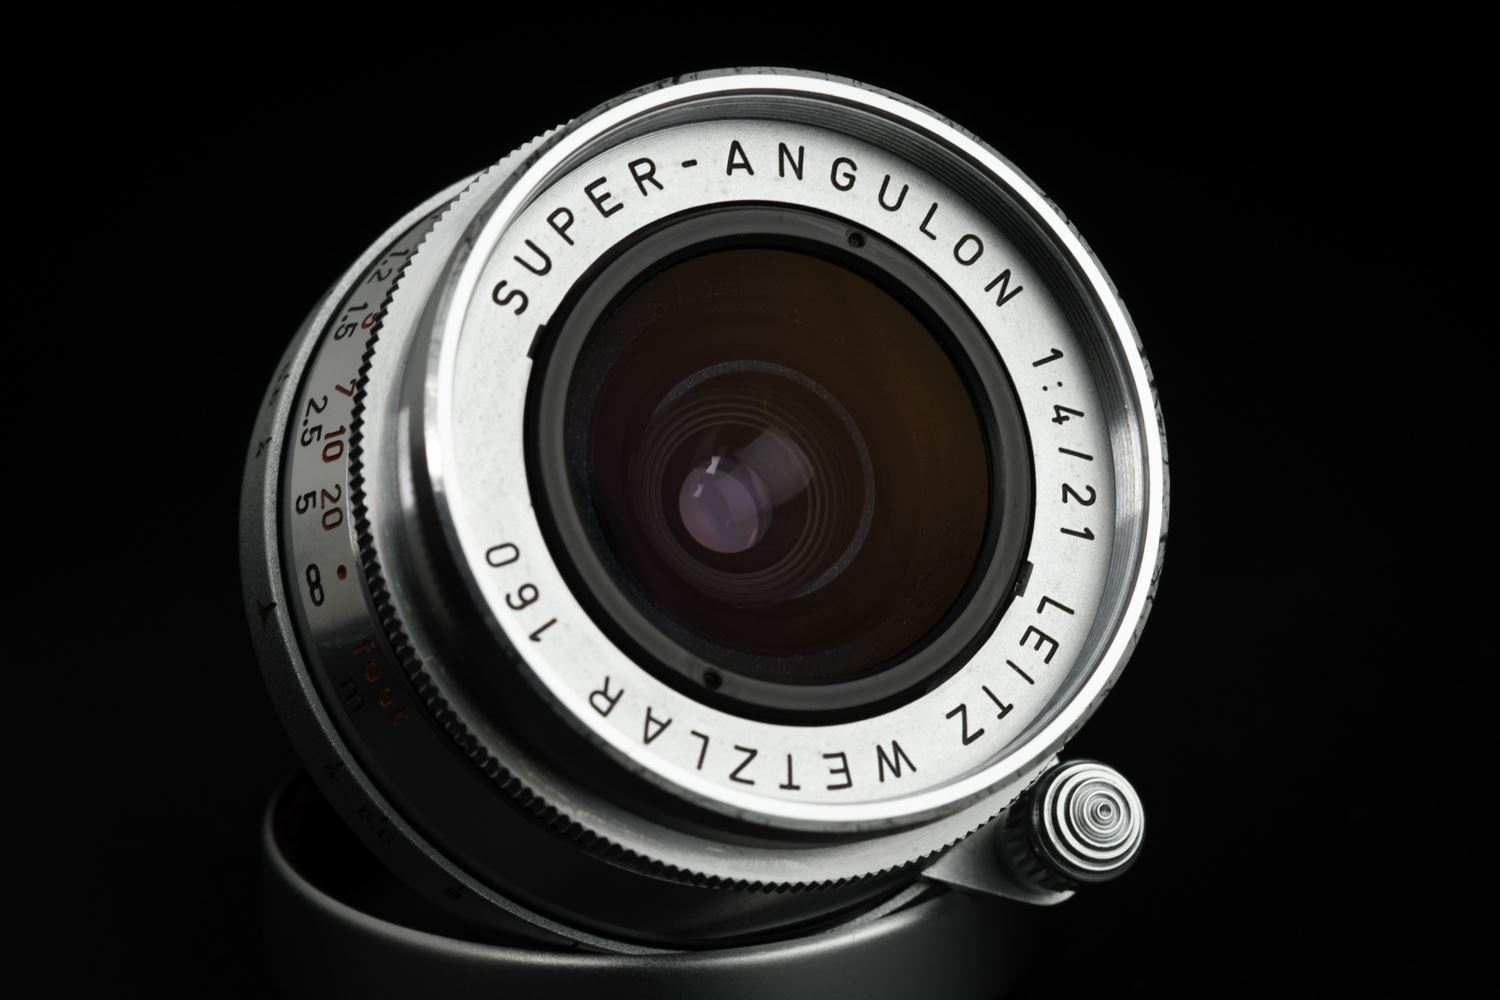 Picture of Leica Super-Angulon 21mm f/4 Screw LTM